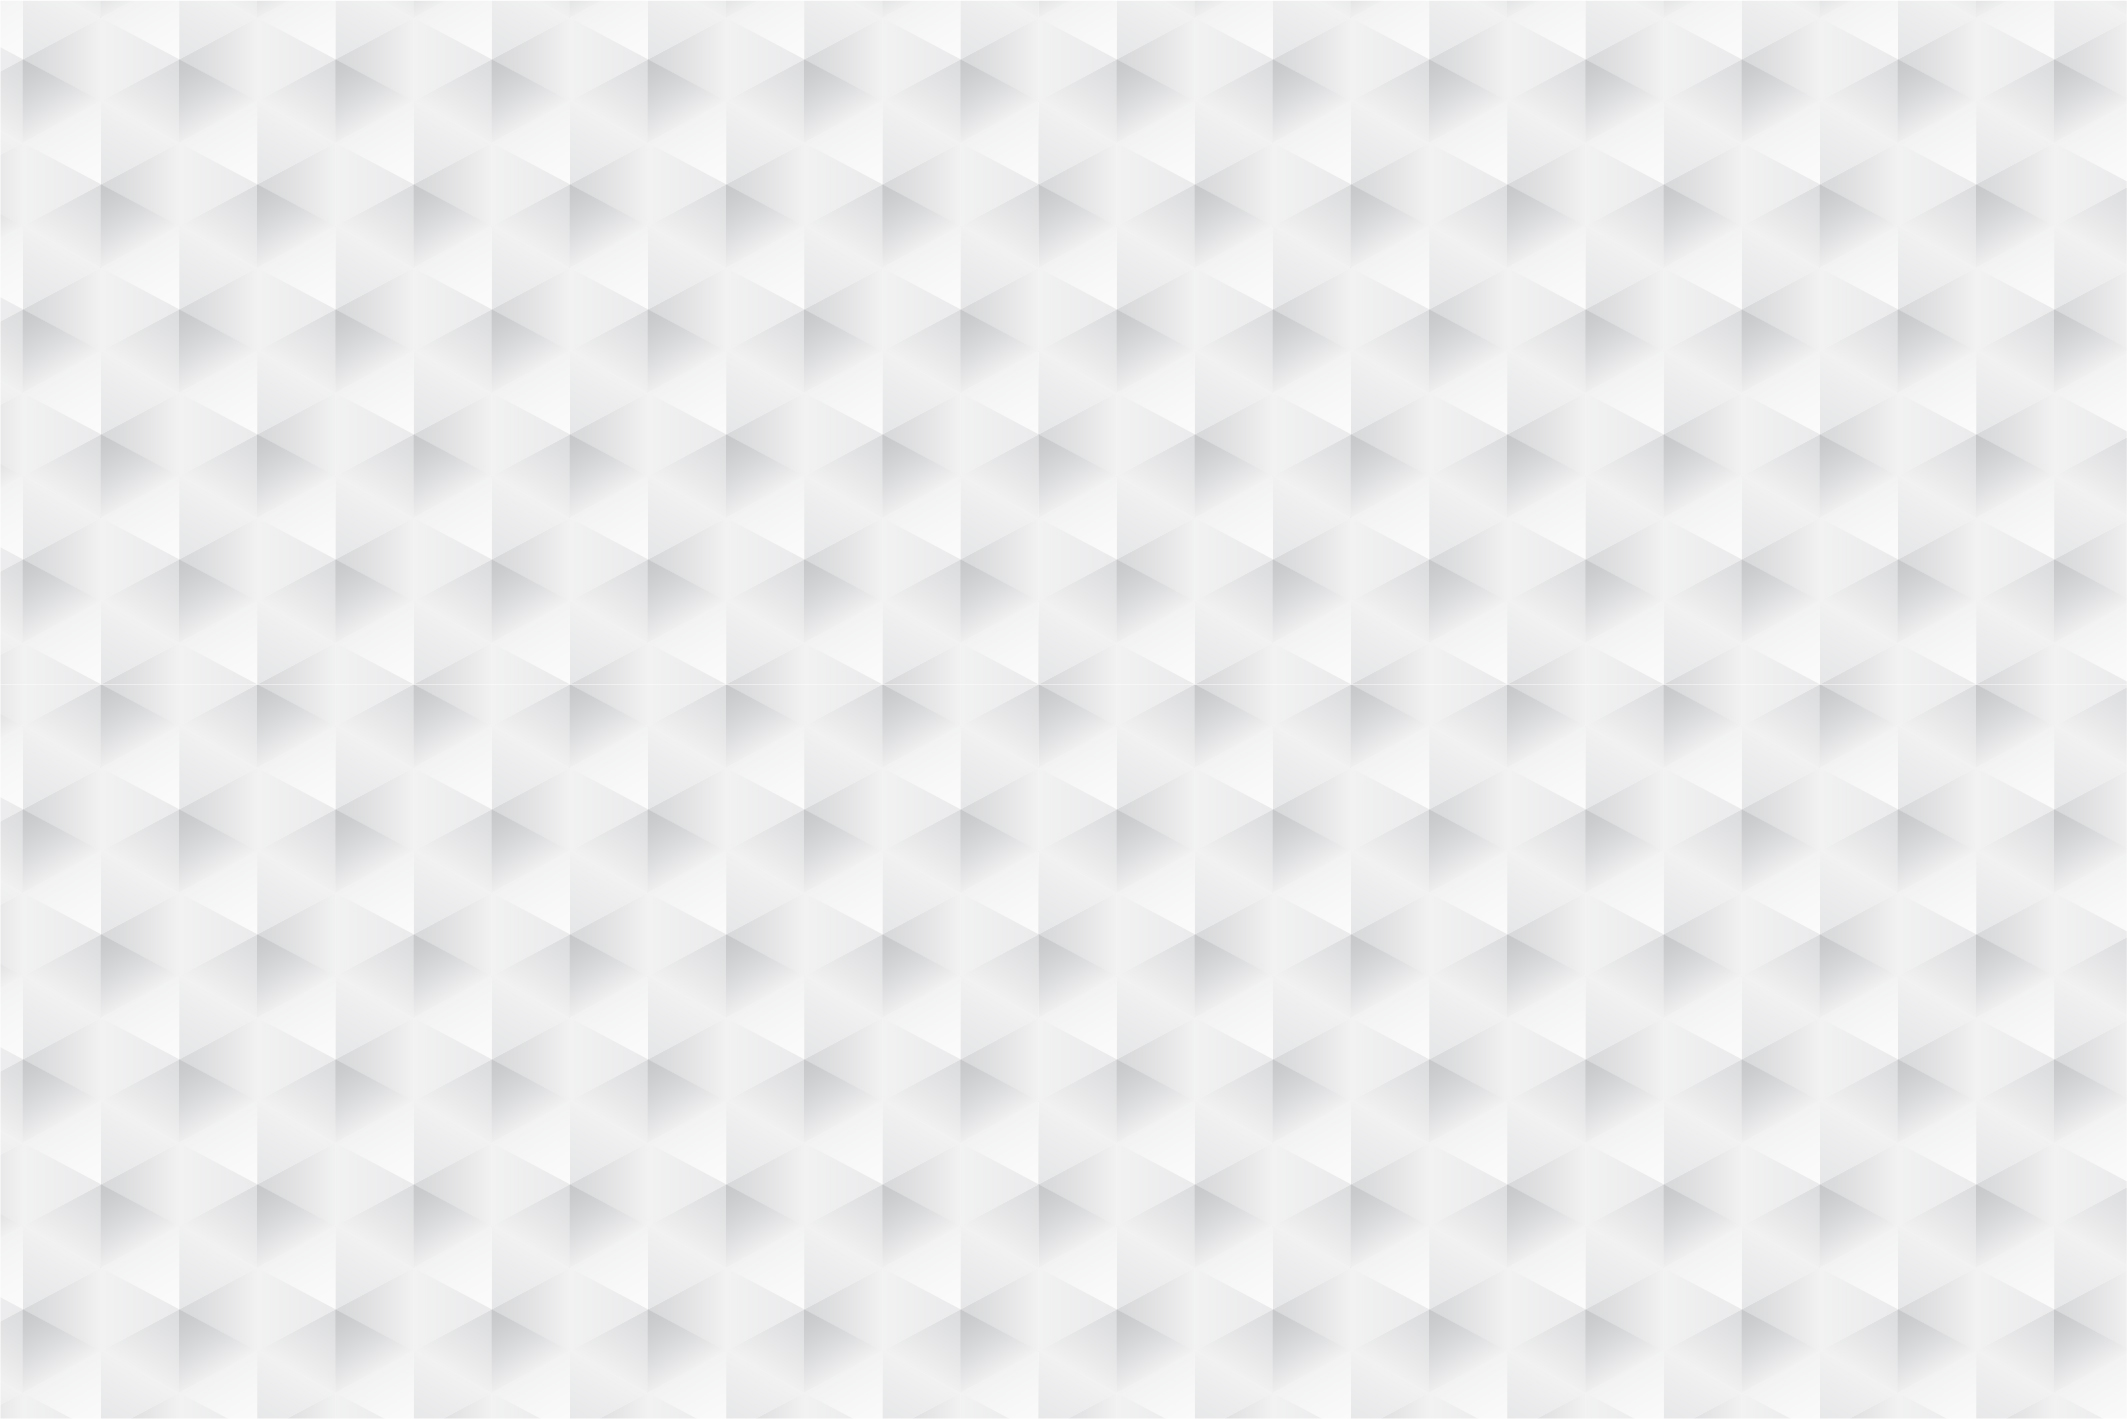 White and gray seamless textures. example image 6